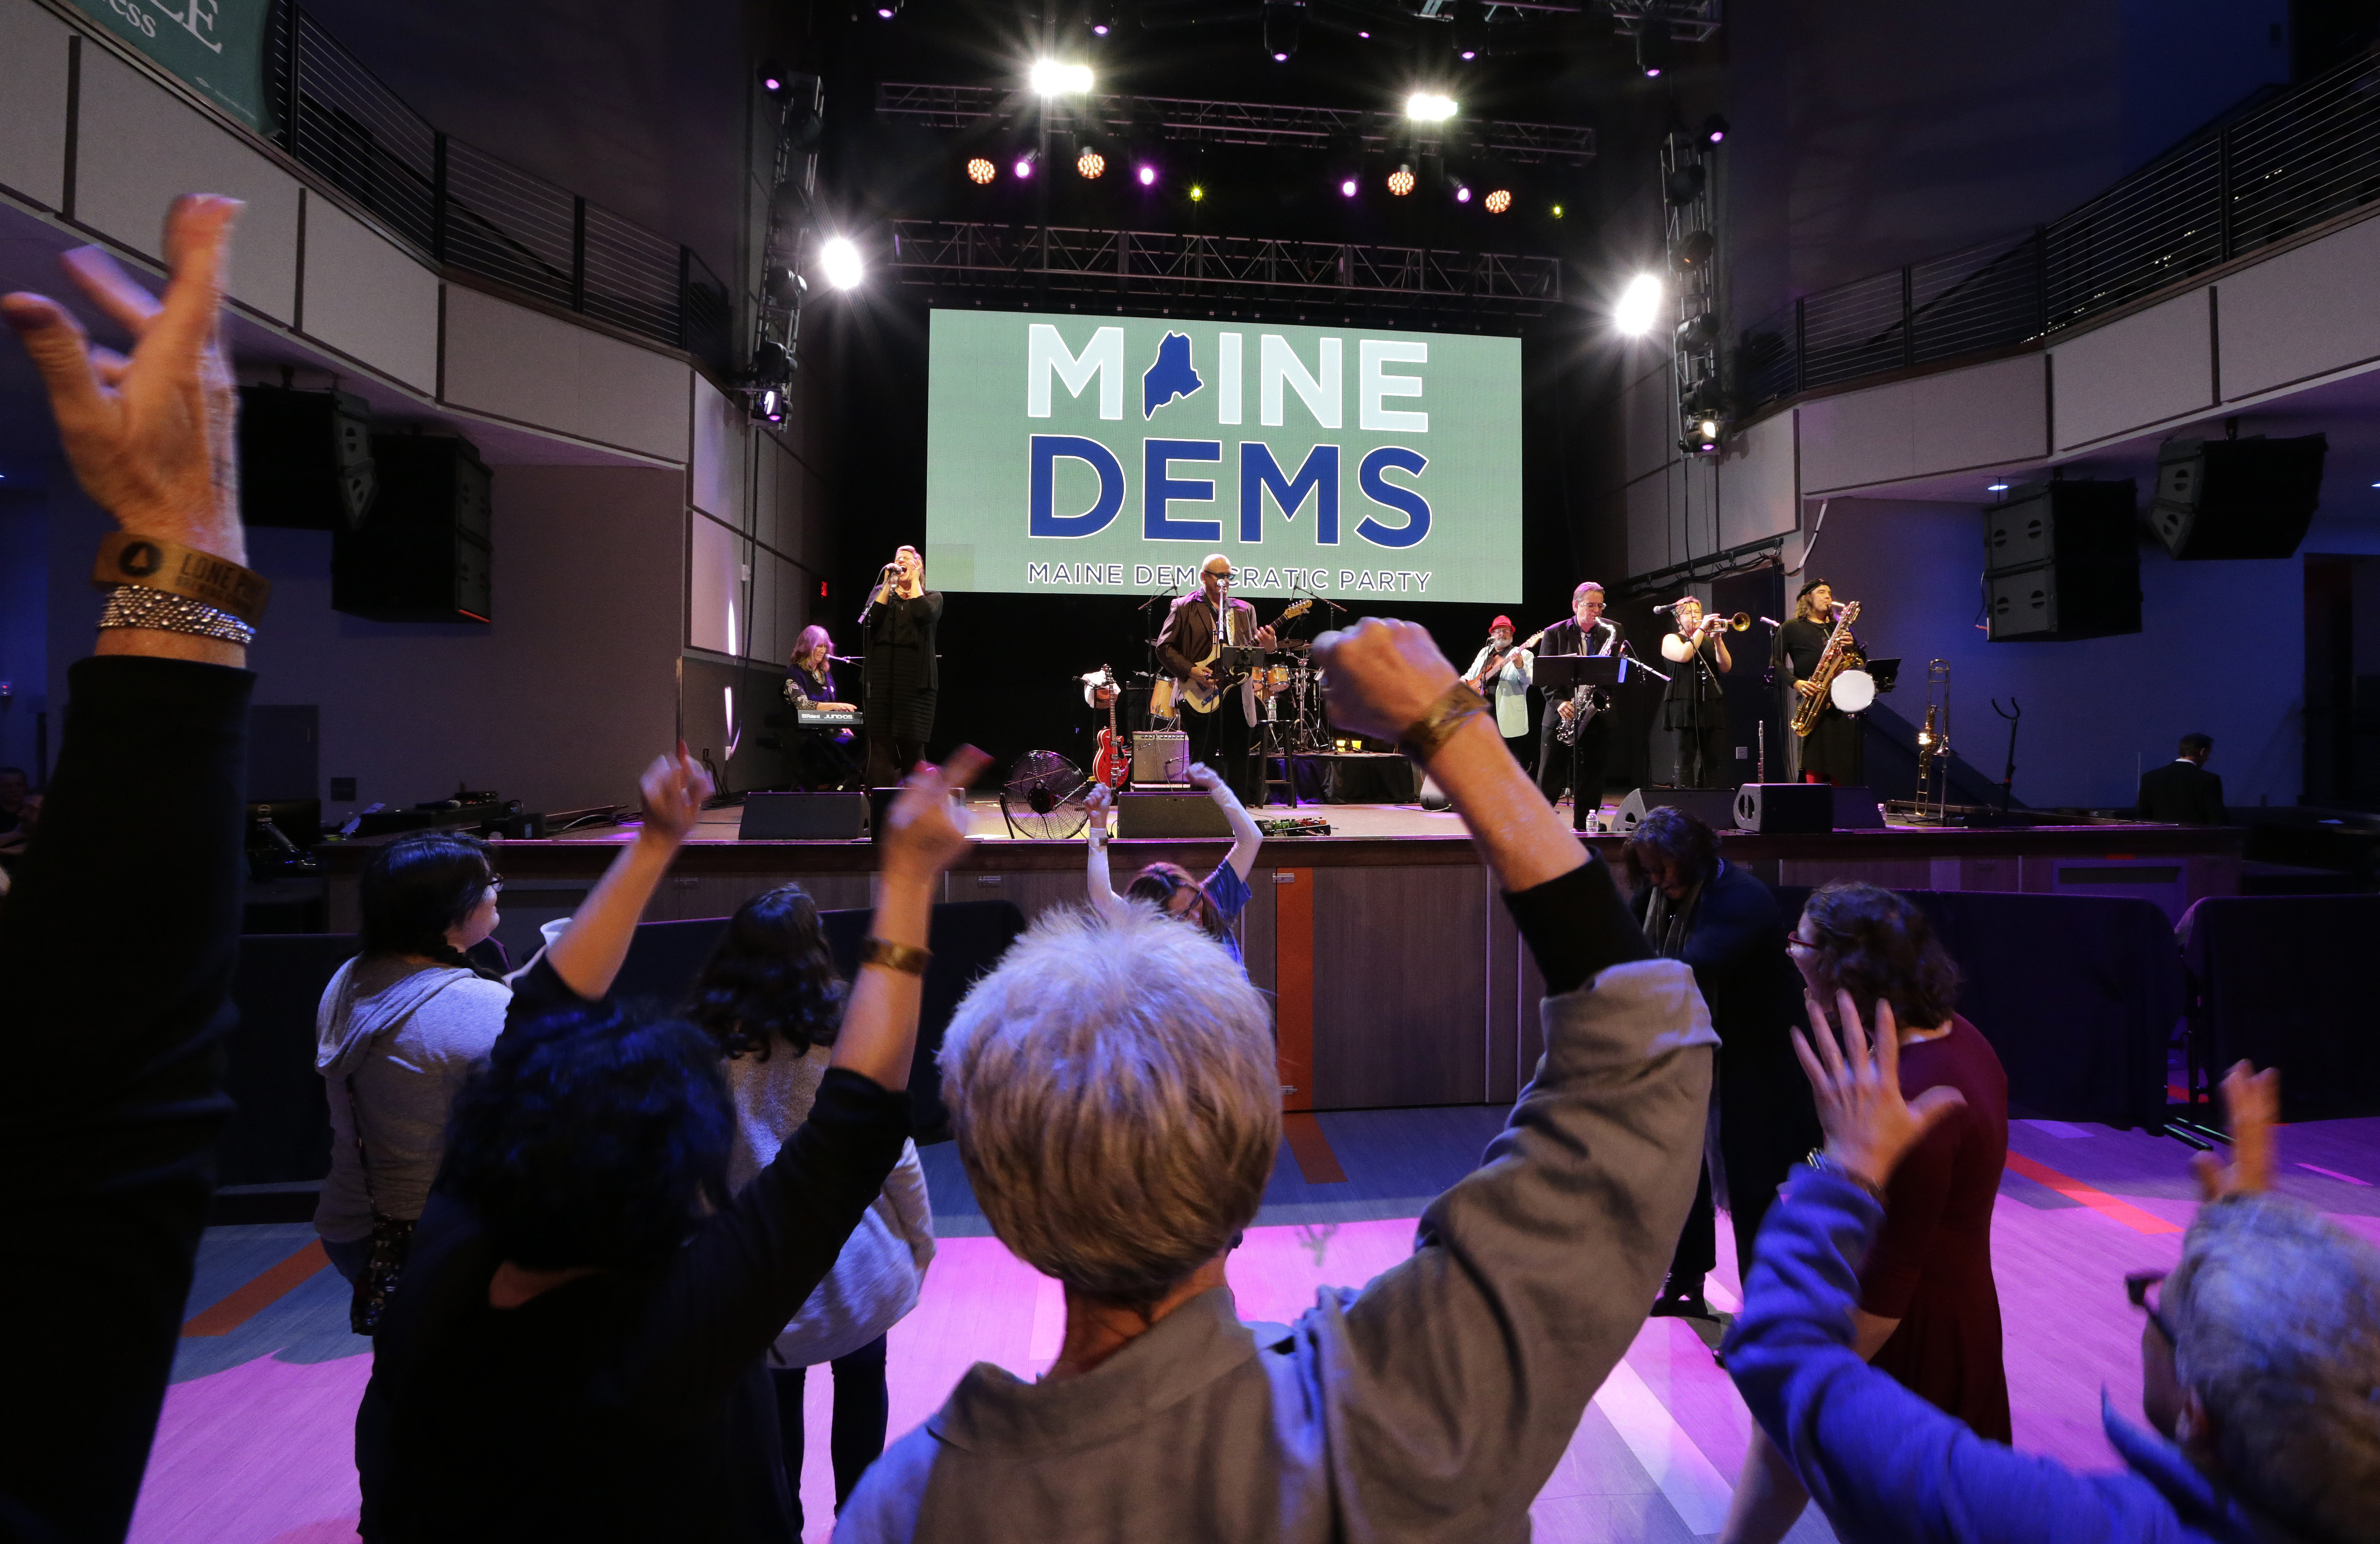 After years of LePage, Maine went very blue Tuesday - The Boston Globe